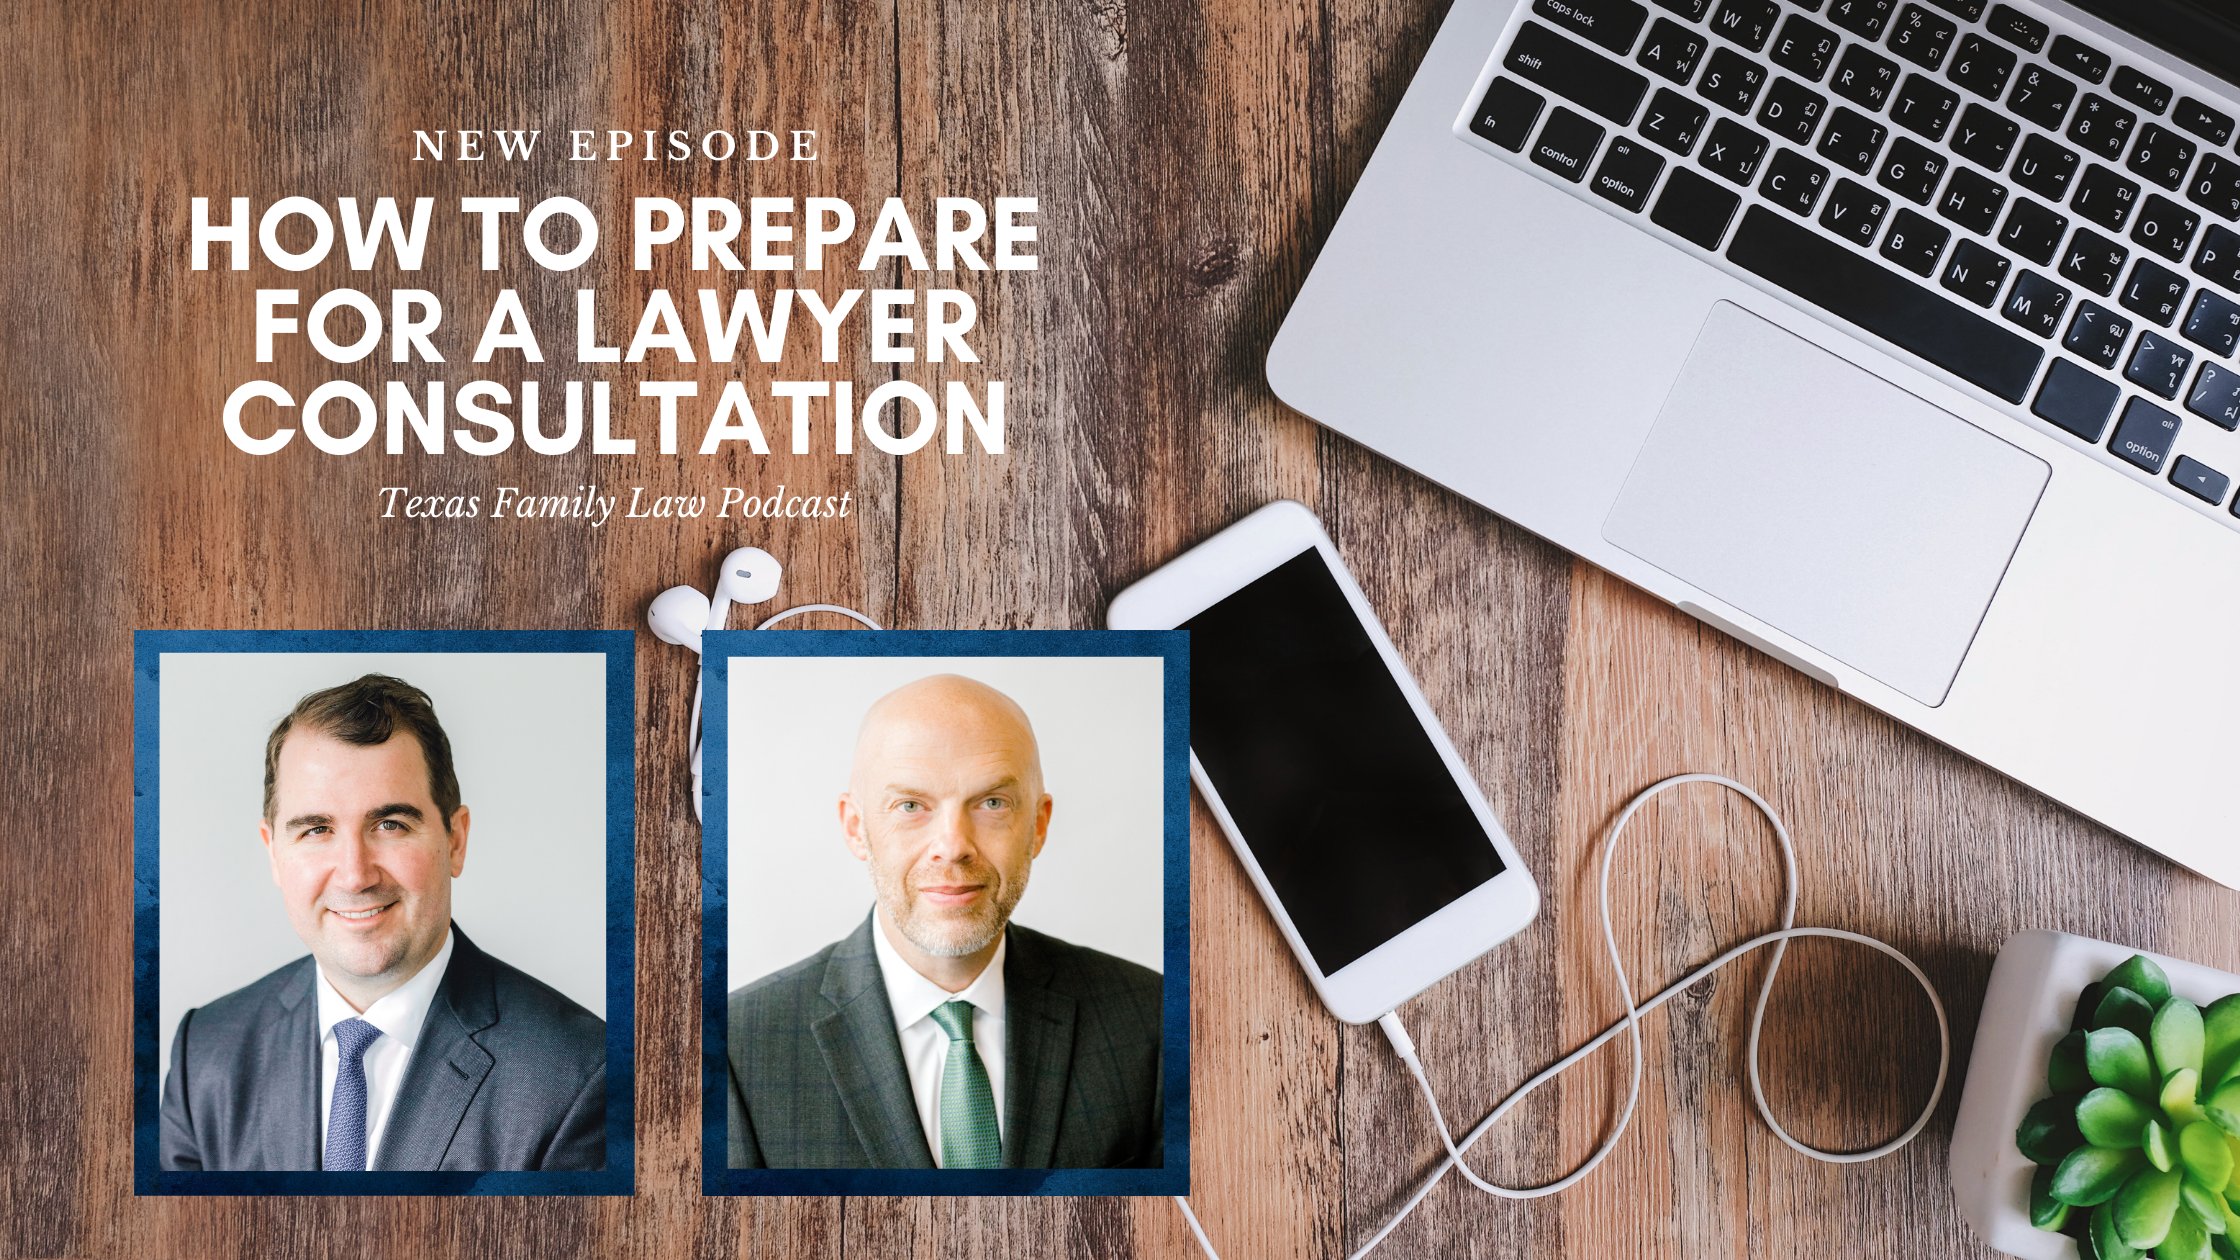 The Texas Family Law Podcast: How to Prepare for a Lawyer Consultation